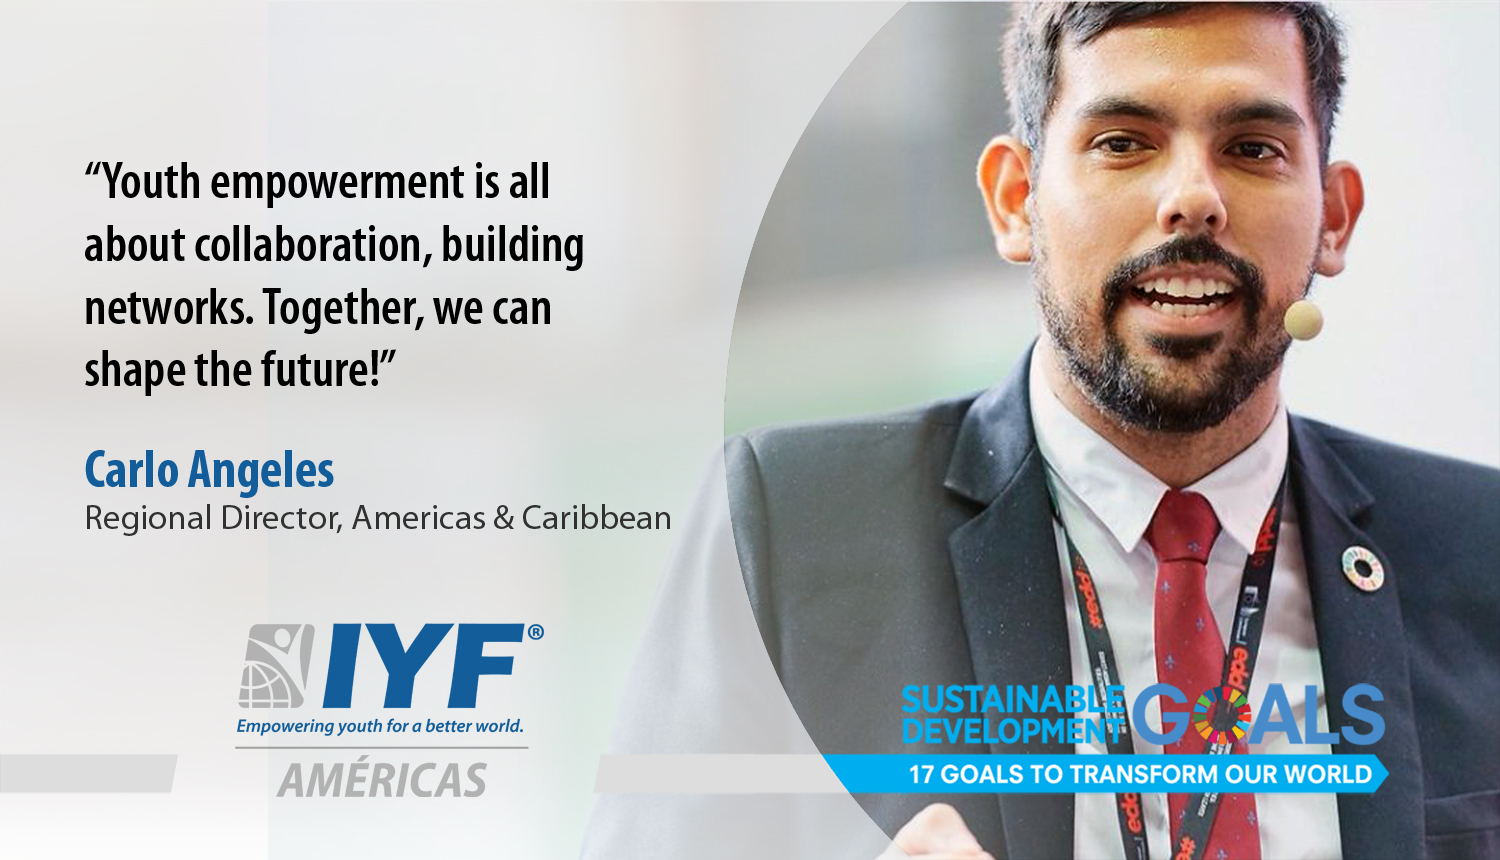 Carlo Angeles, IYF Regional Director for Asia and Pacific